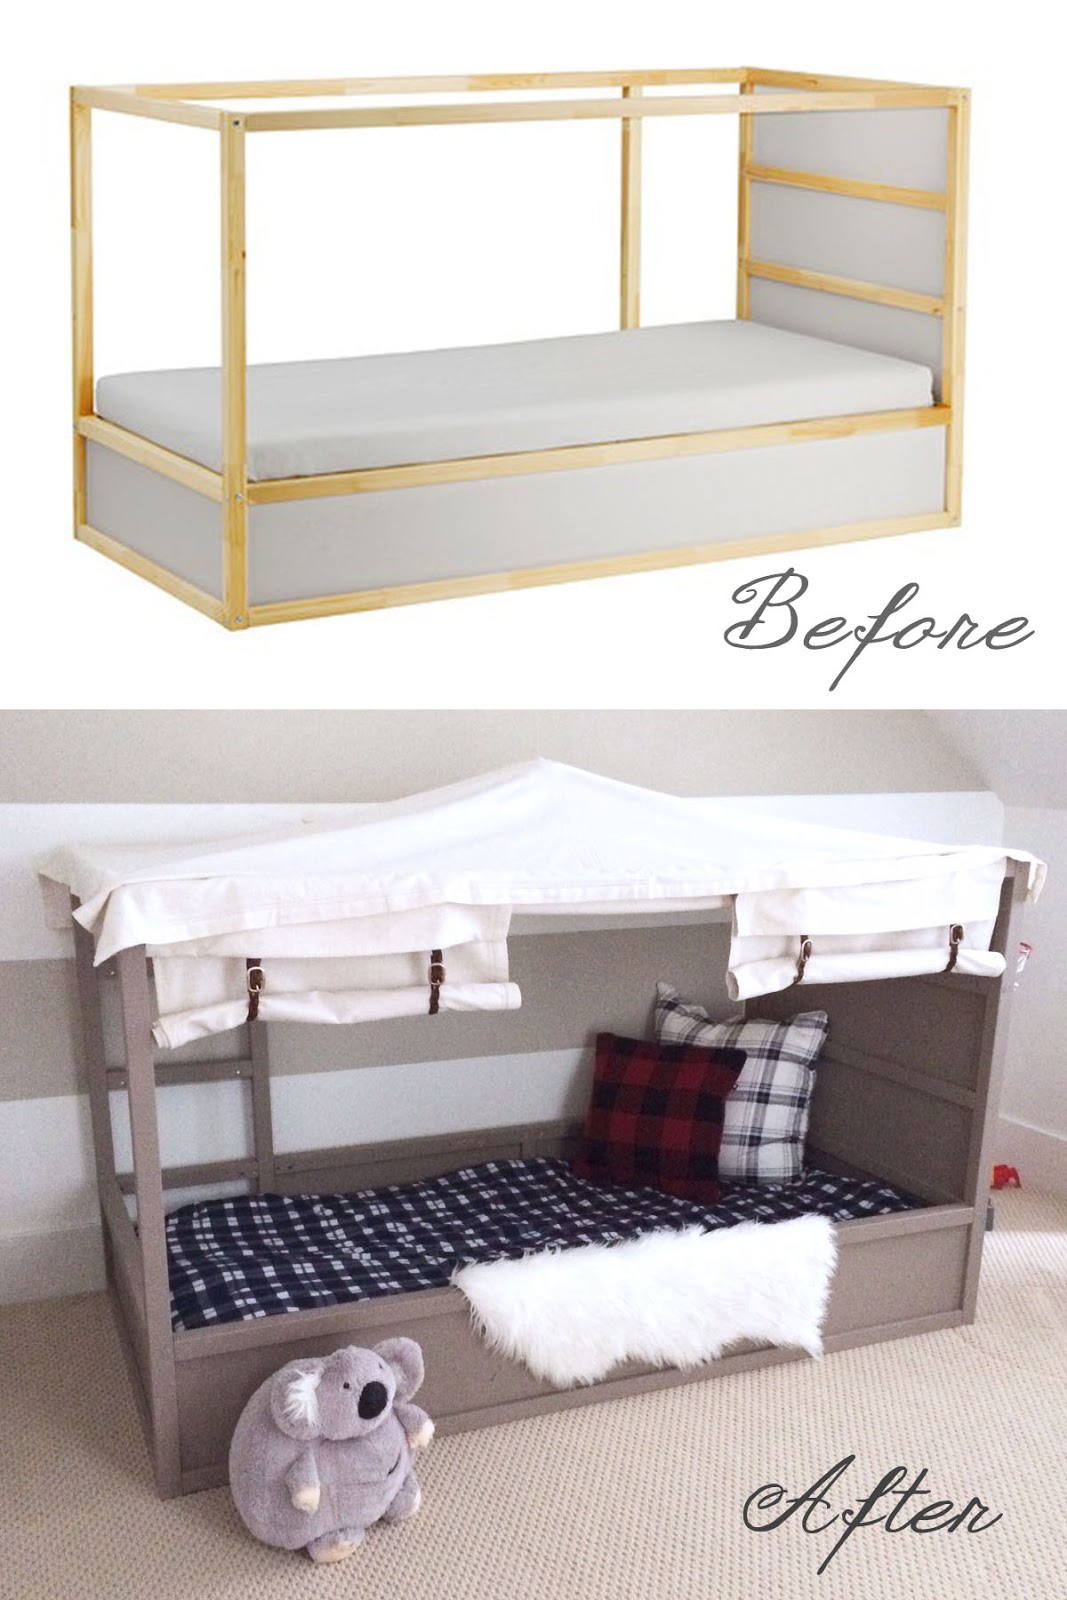 ikea kura bed hack diy boy canopy bed harlow thistle home design lifestyle diy. Black Bedroom Furniture Sets. Home Design Ideas